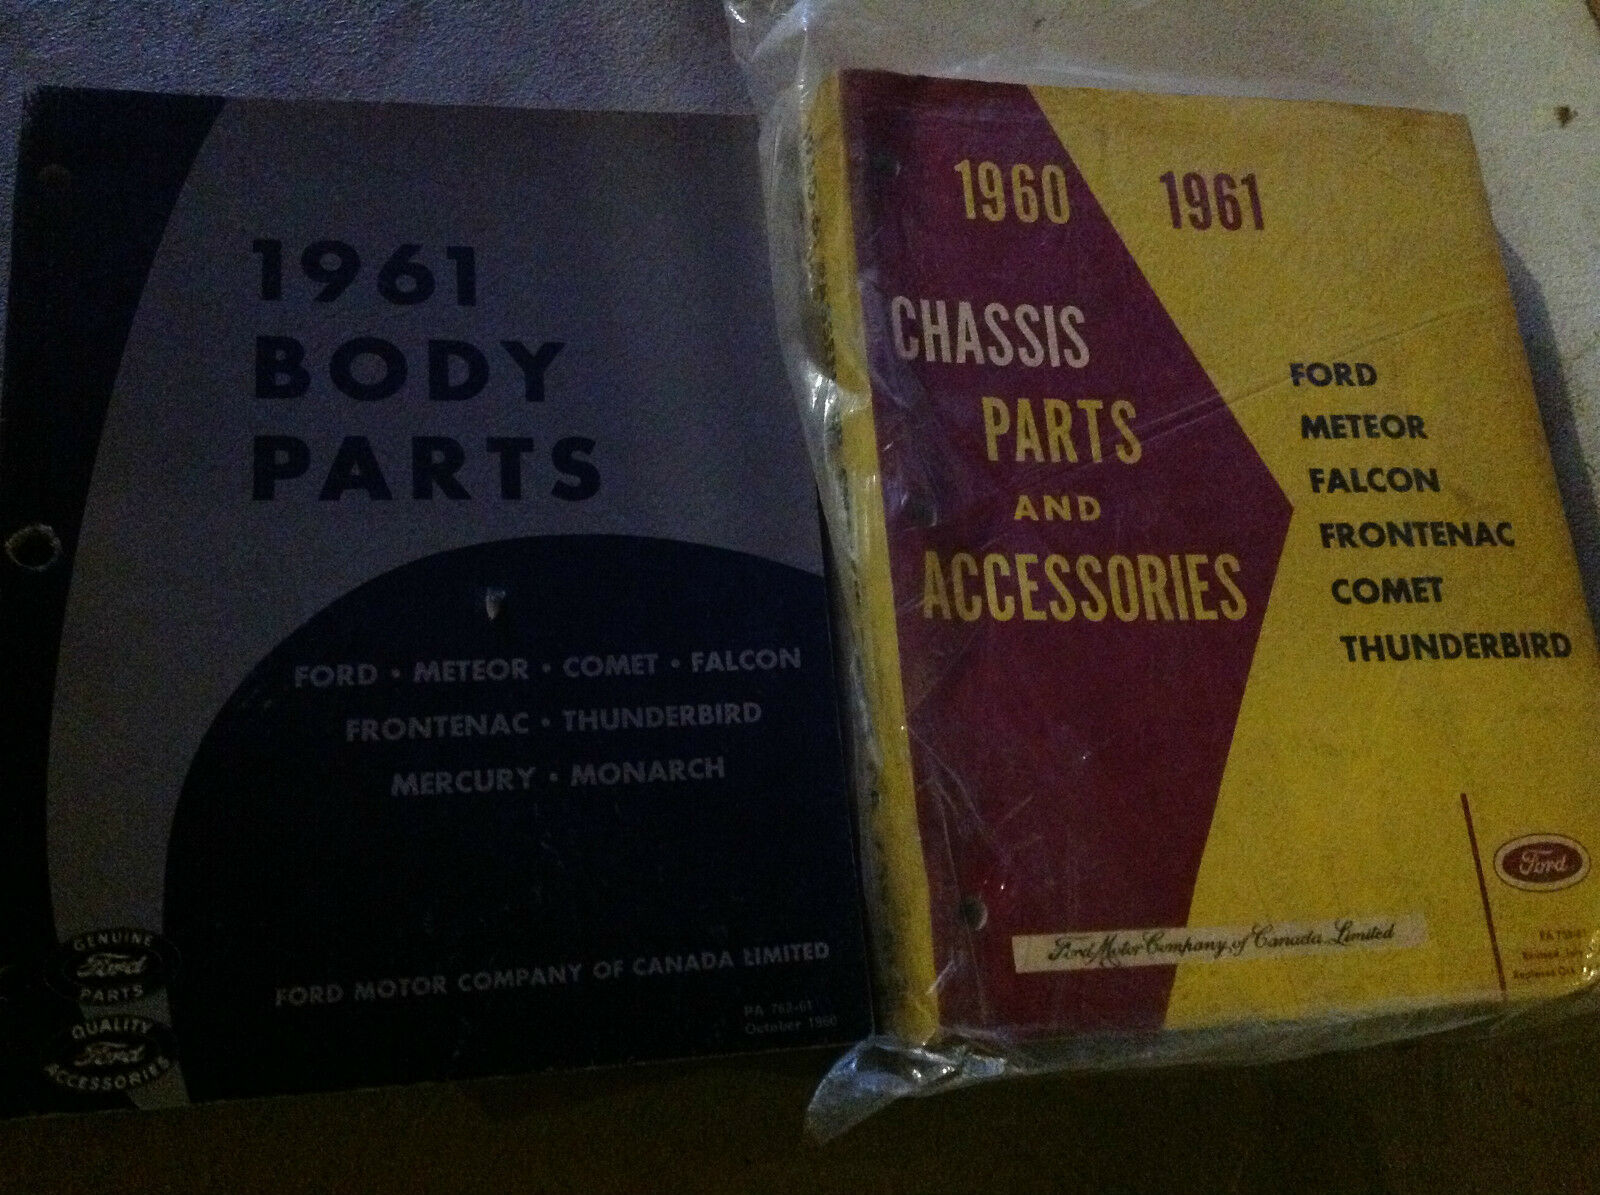 1961 Ford Falcon Frontenac Thunderbird Chassis Teile & Zubehör Manuell Set